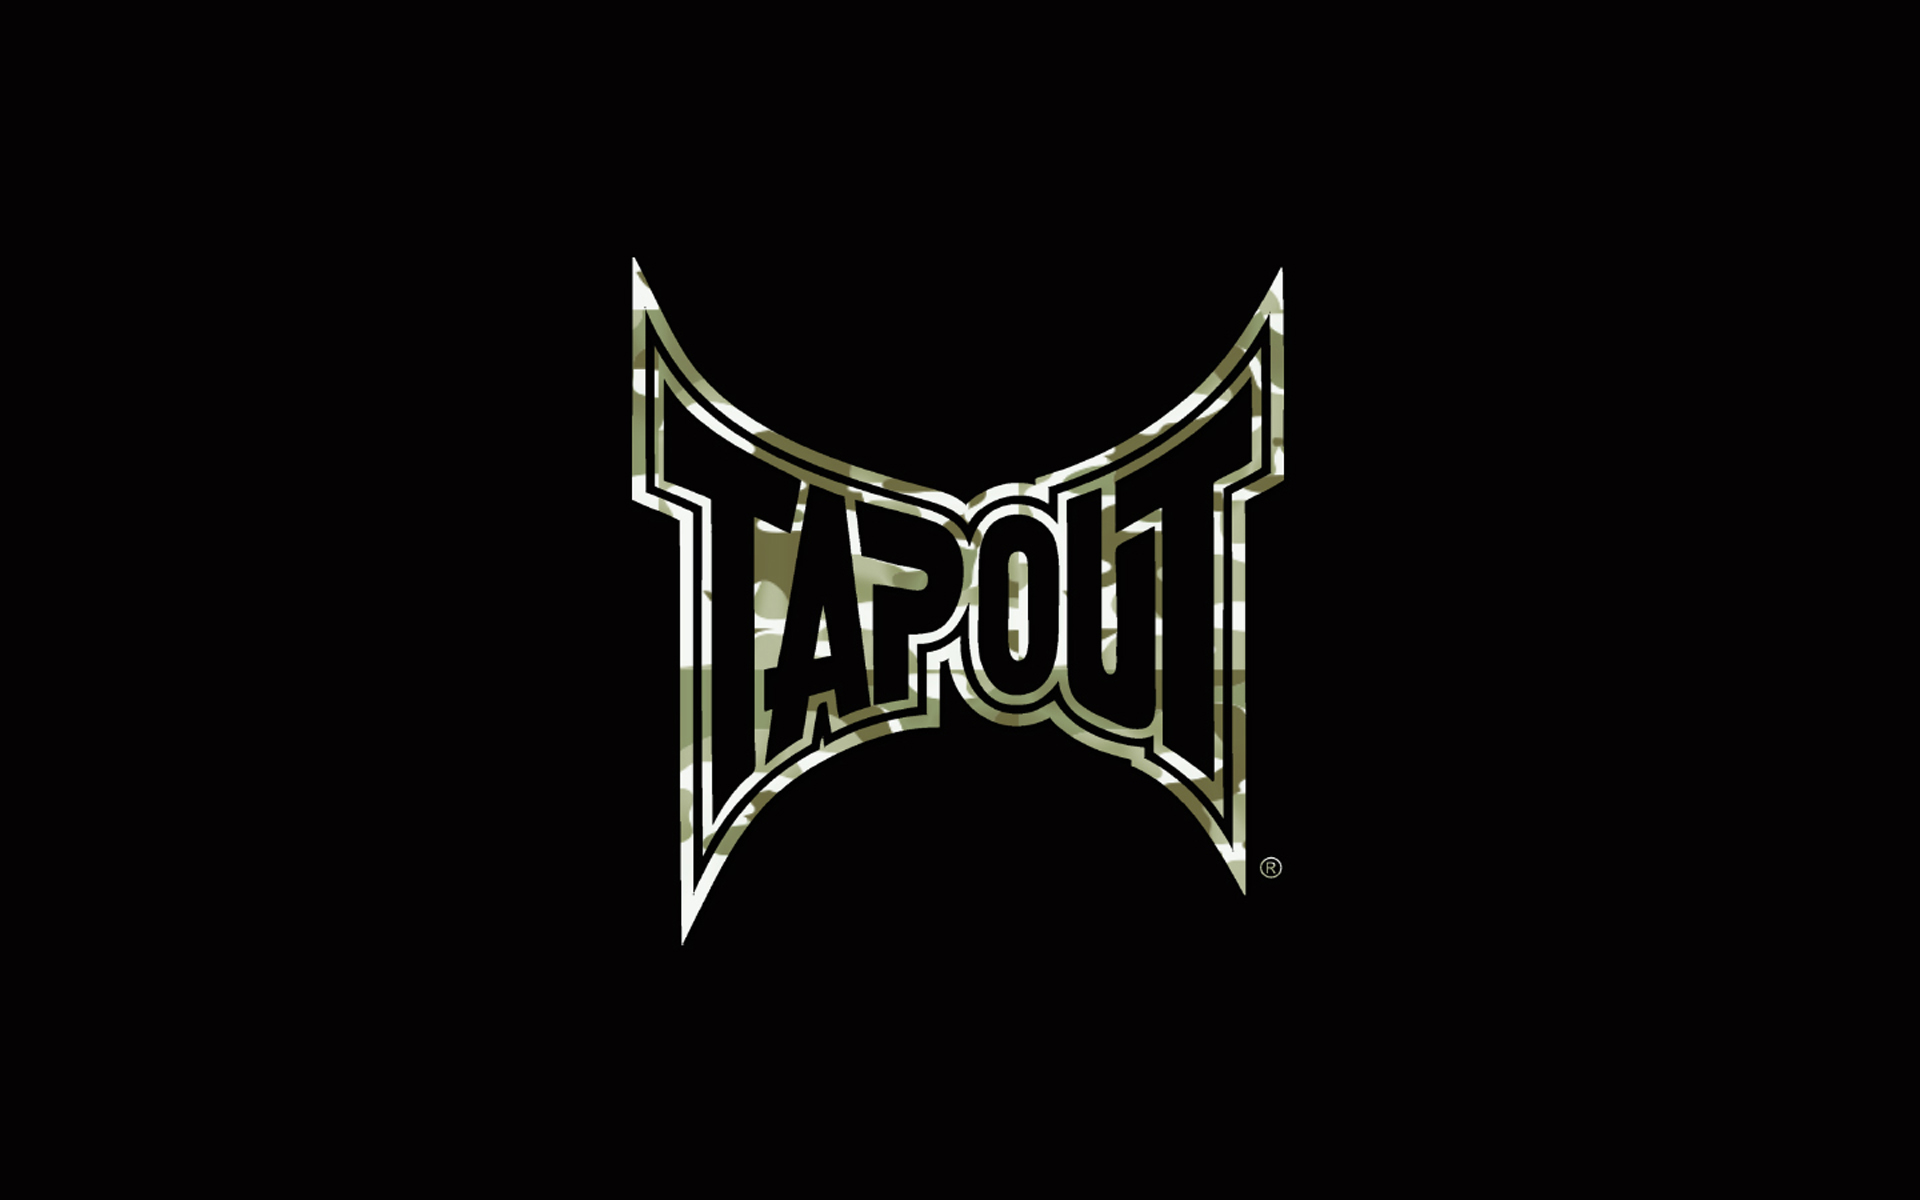 tapout wallpaper G6RflXvz